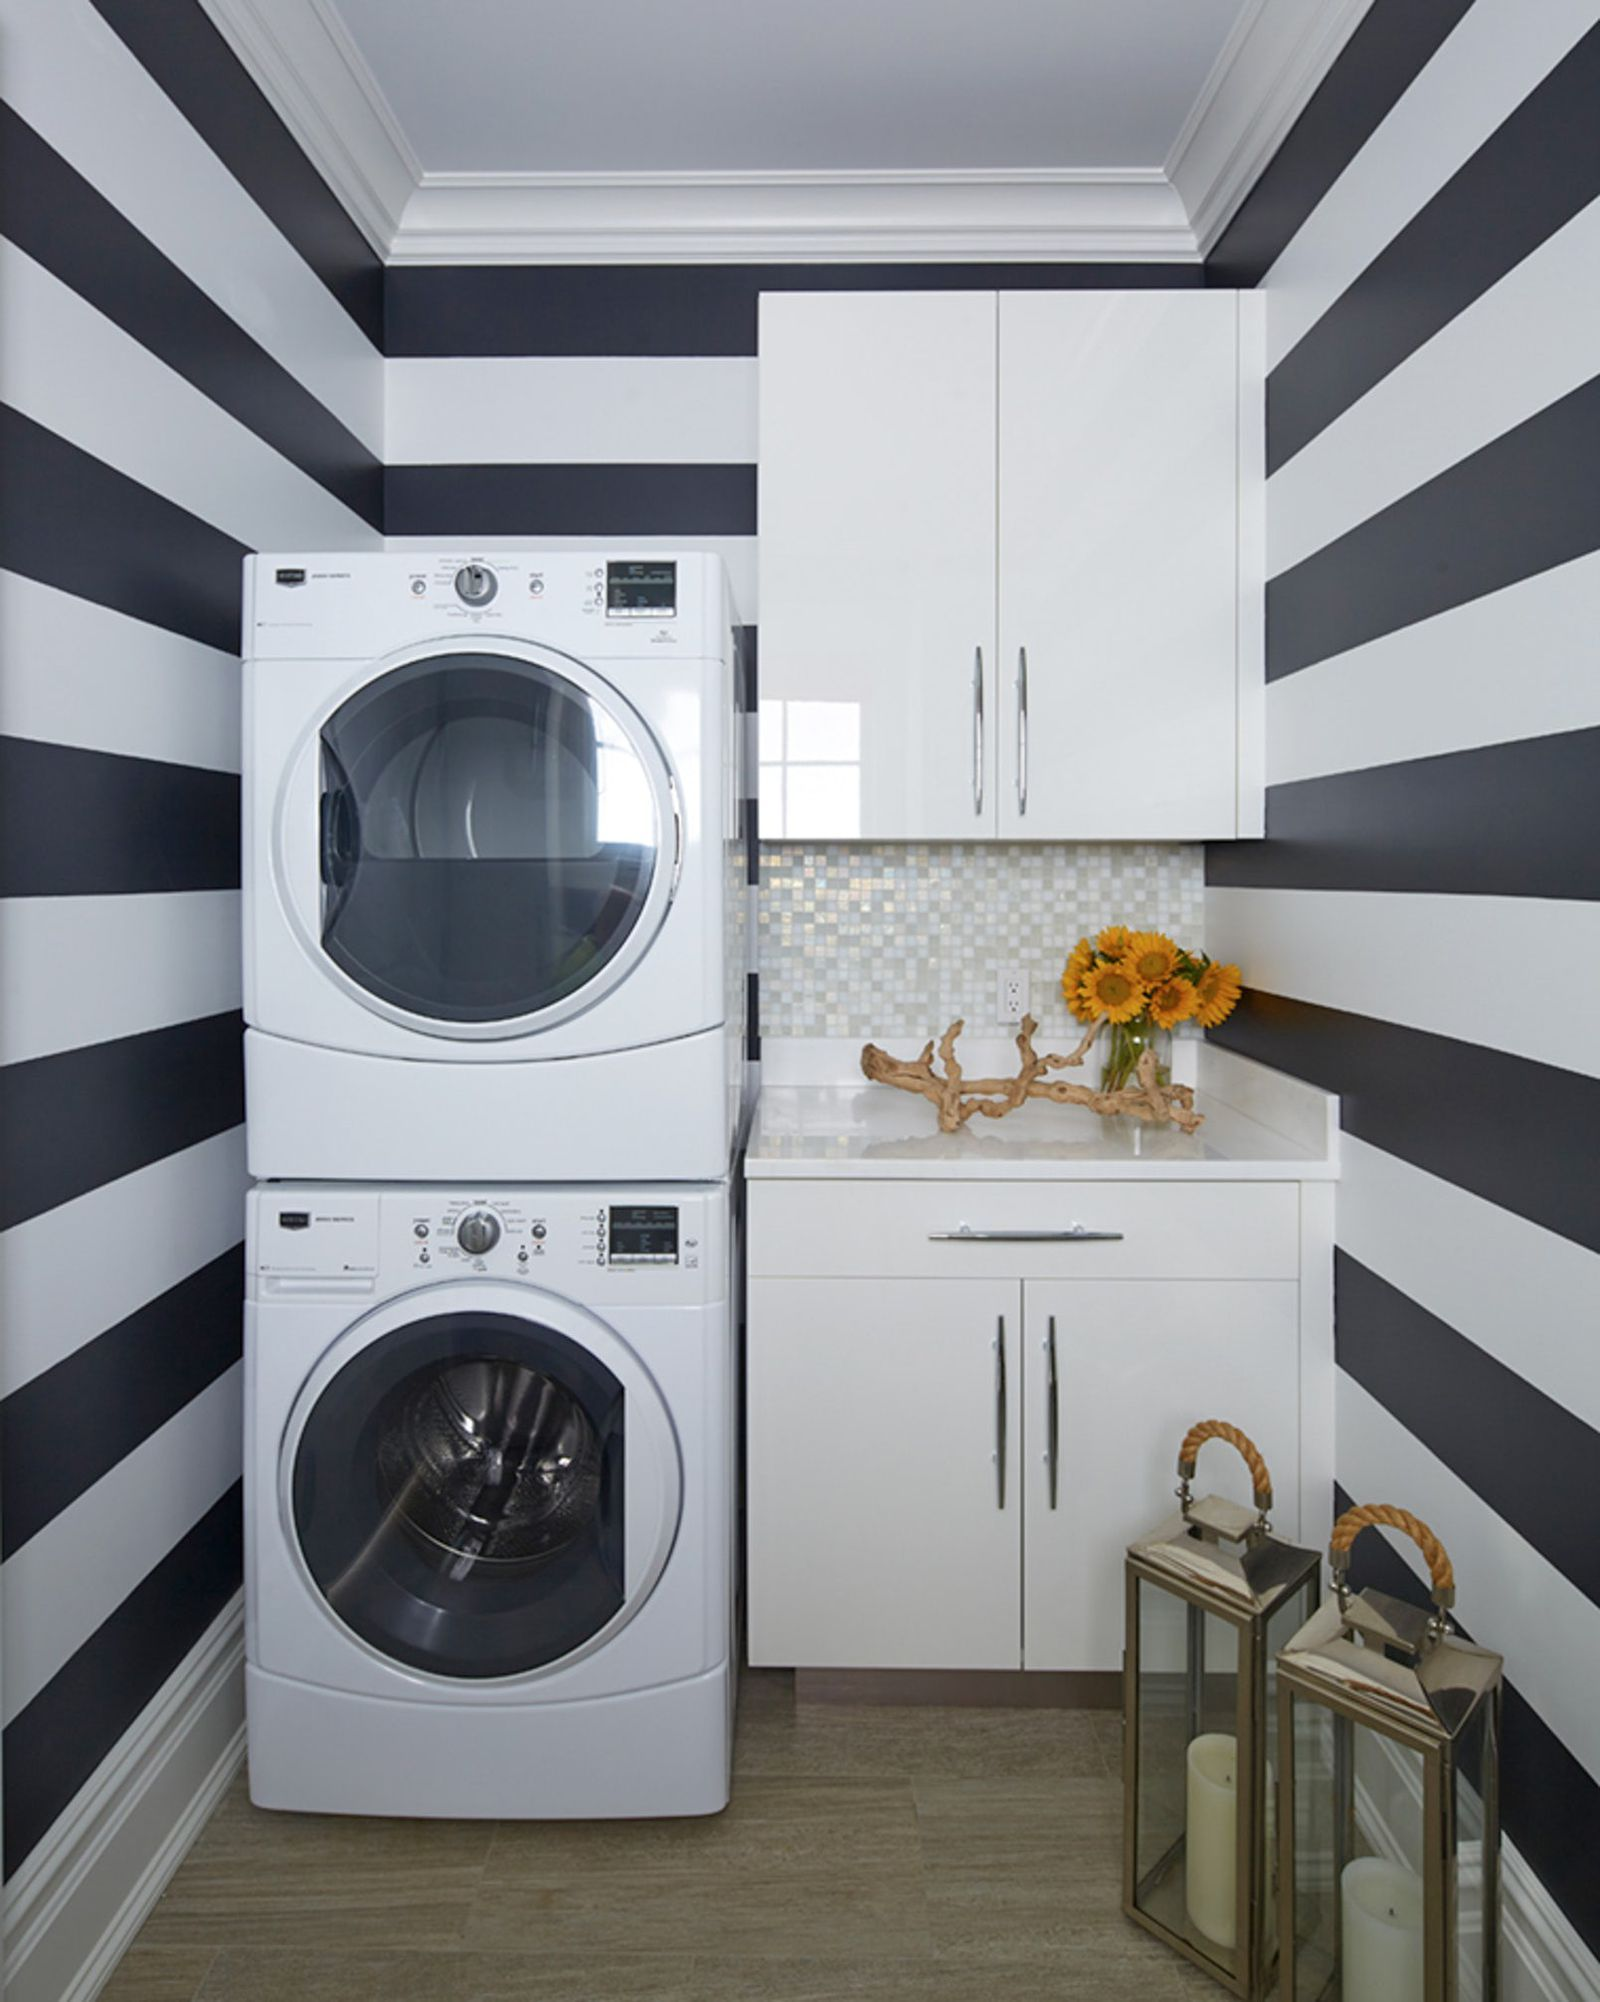 15 brilliant design ideas for small laundry rooms small on extraordinary small laundry room design and decorating ideas modest laundry space id=62134